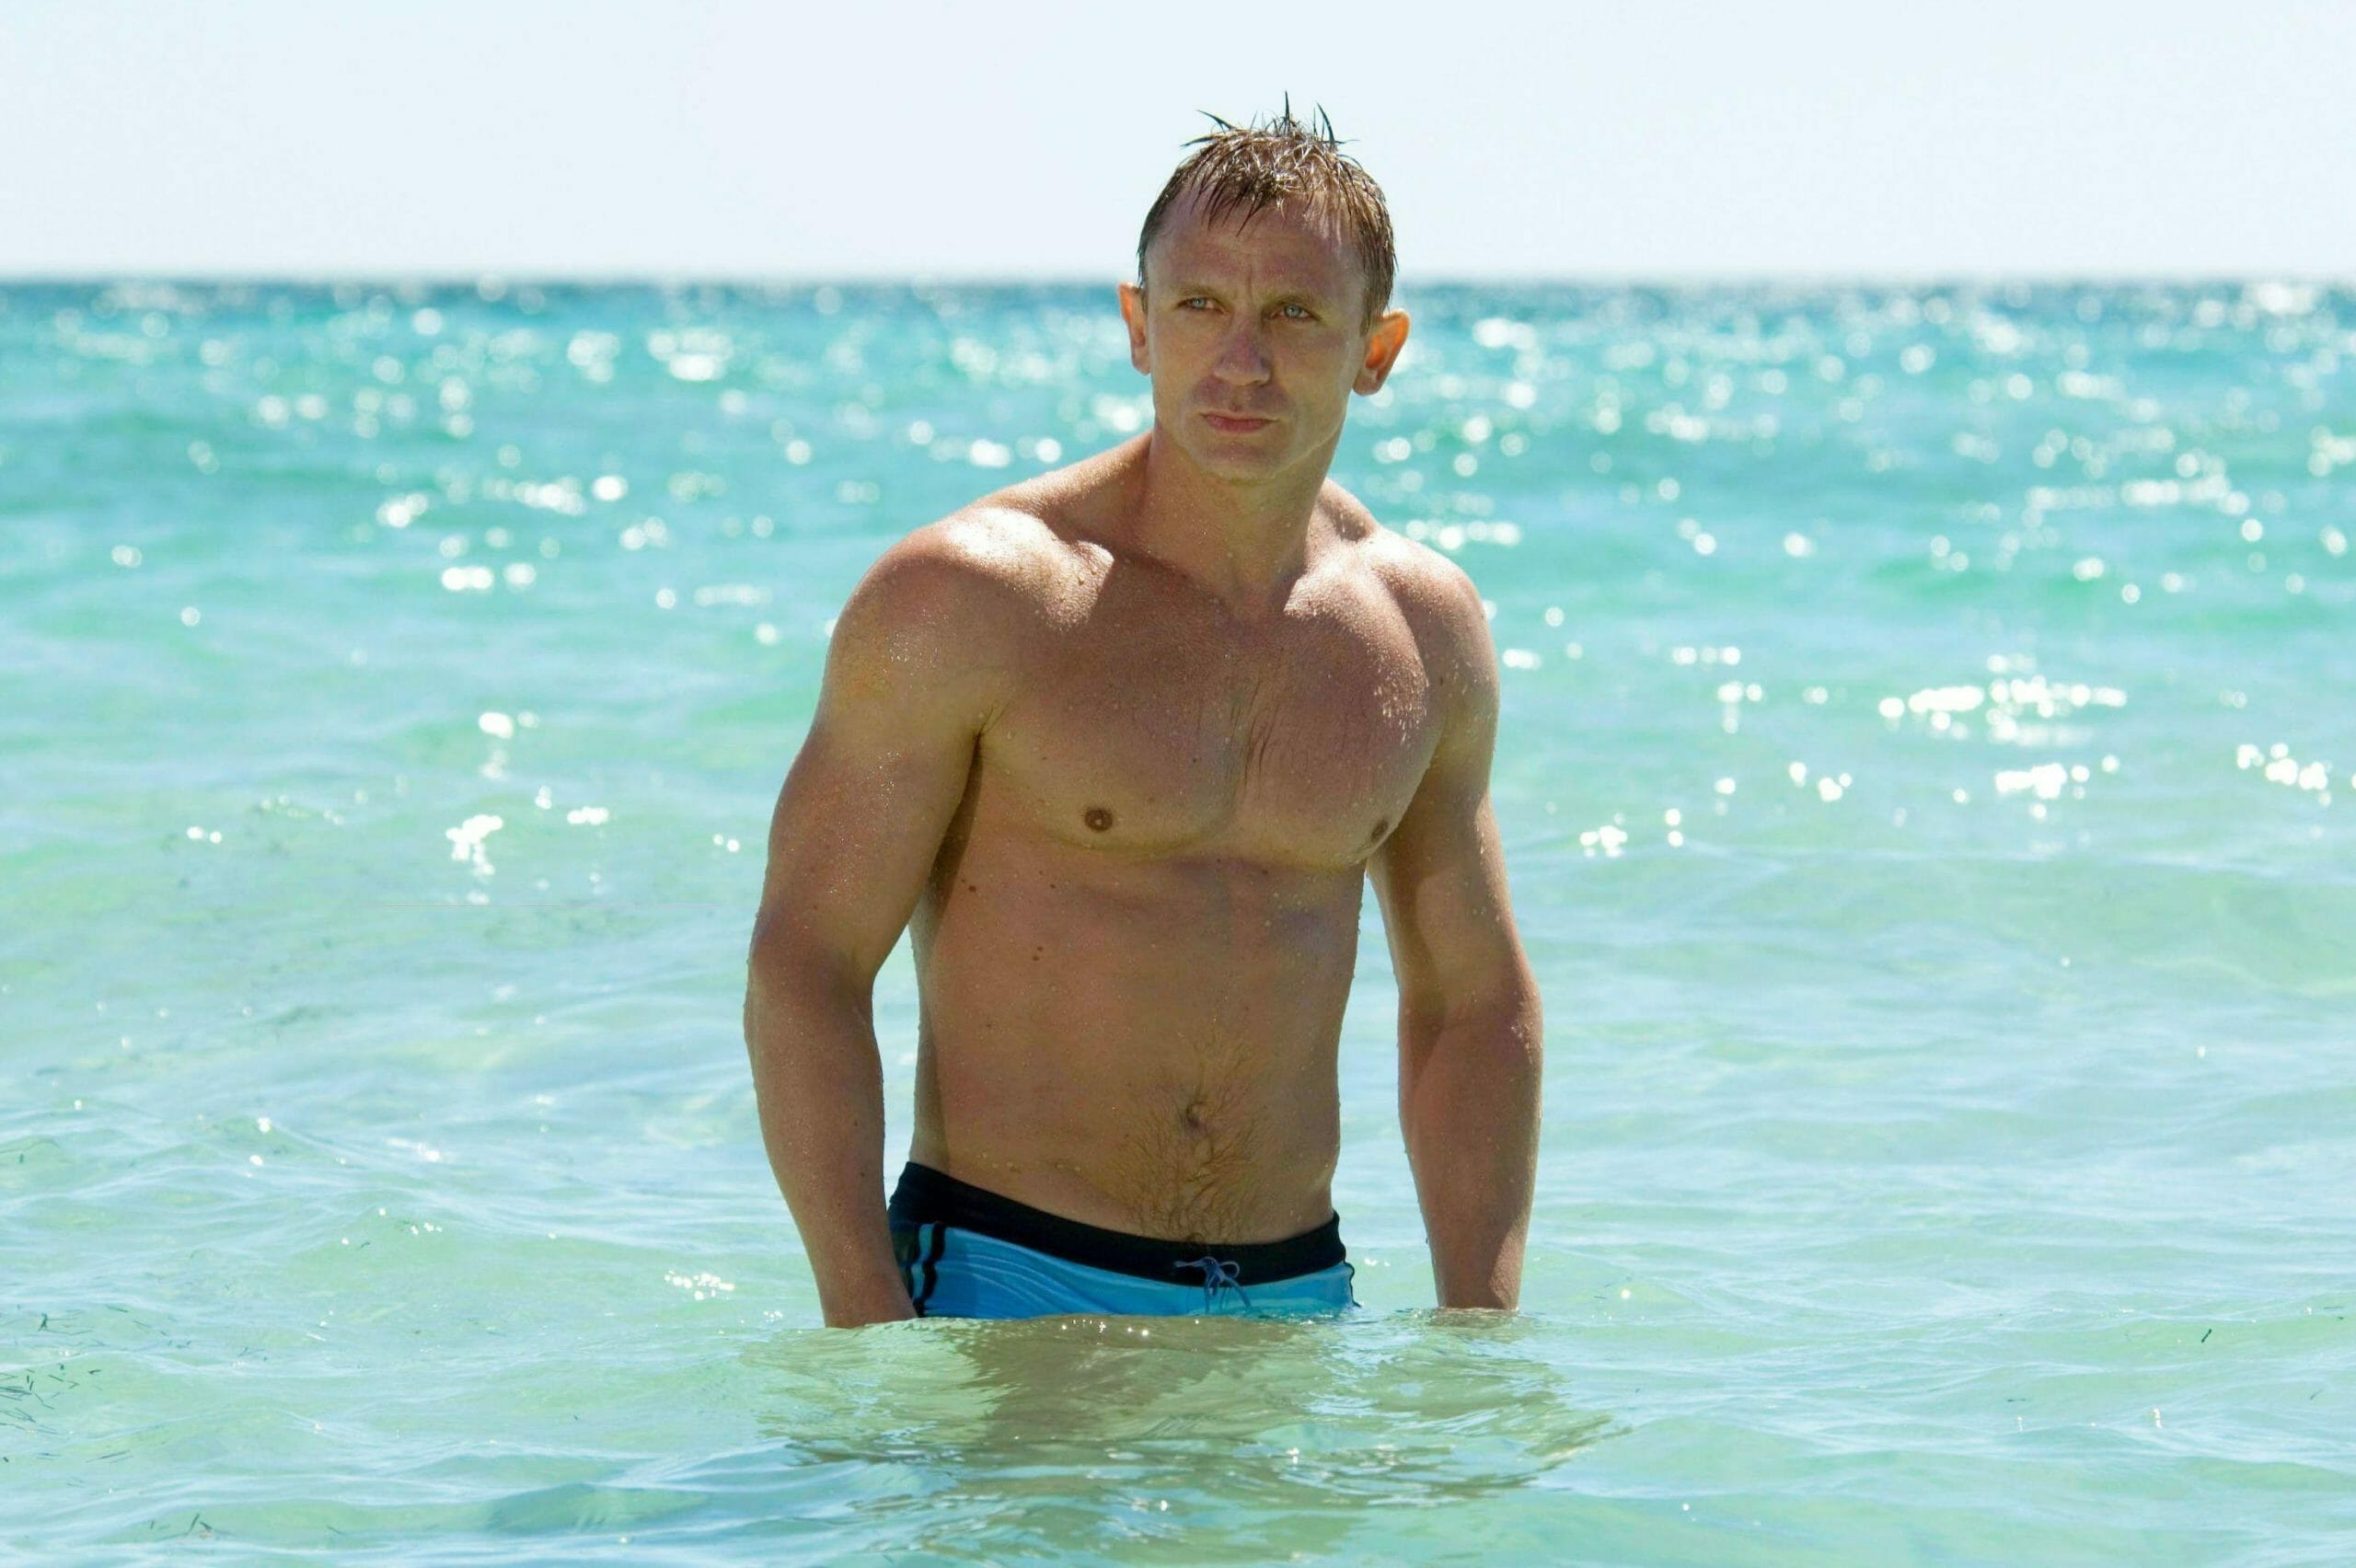 Who Are The Frontrunners To Succeed Daniel Craig As The Next James Bond?